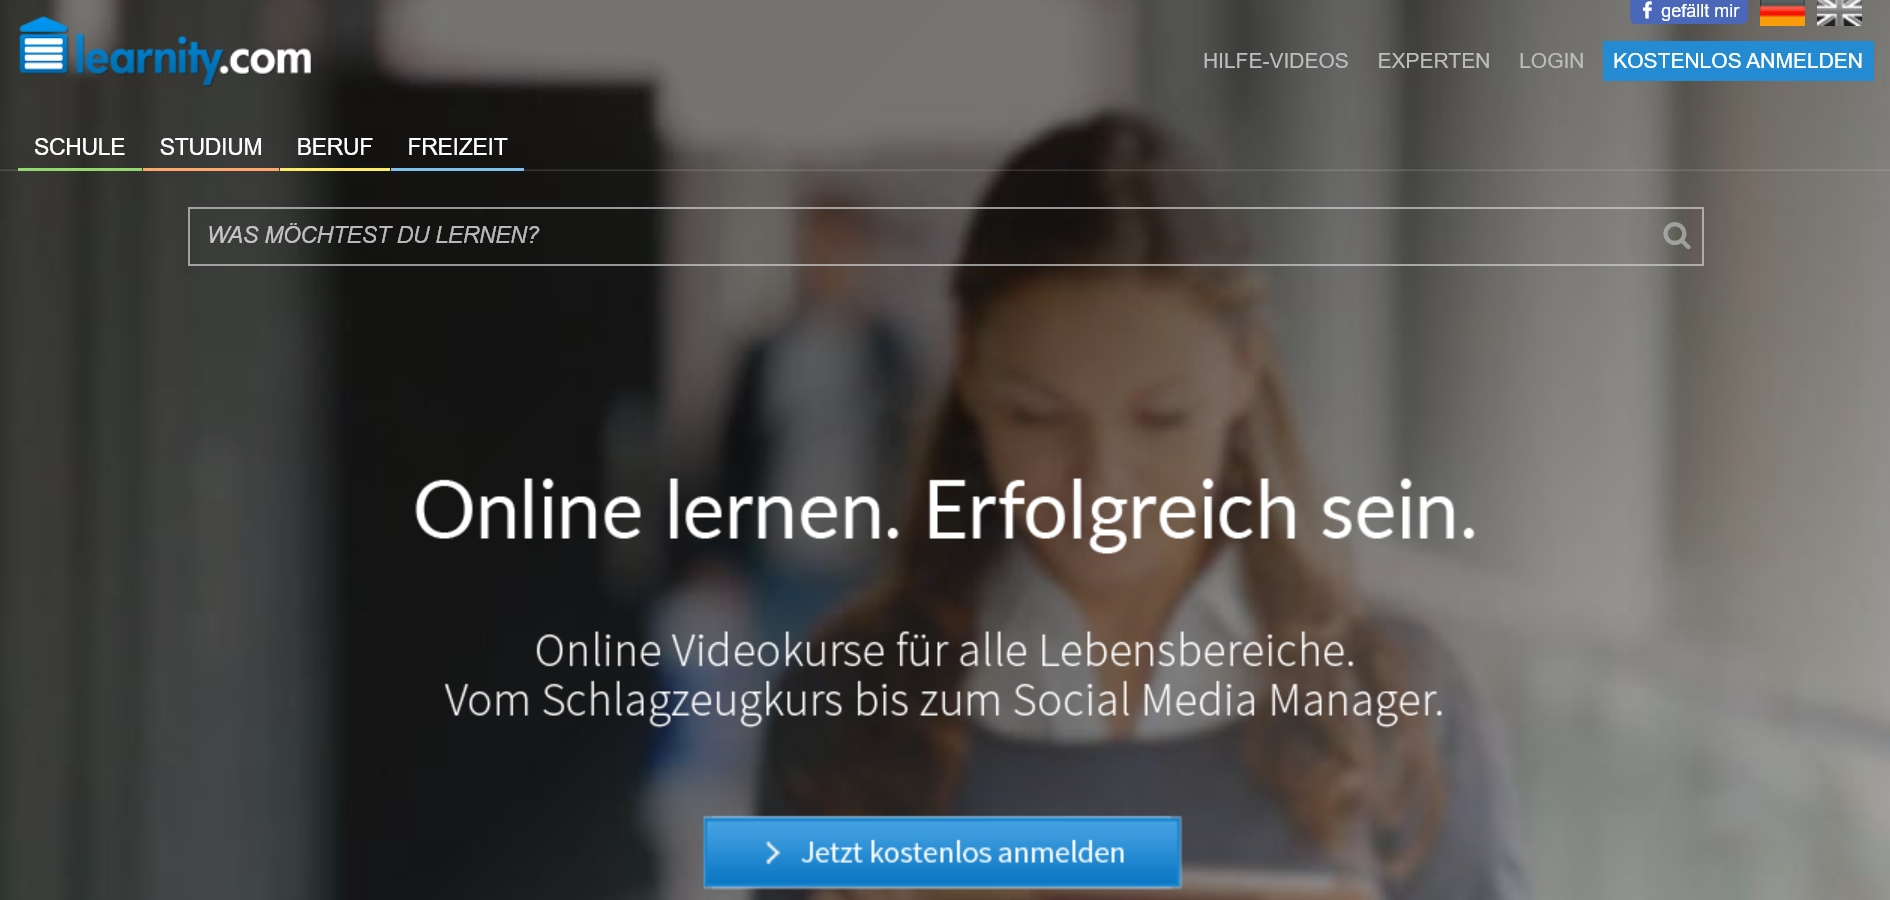 Content distribution mit learnity